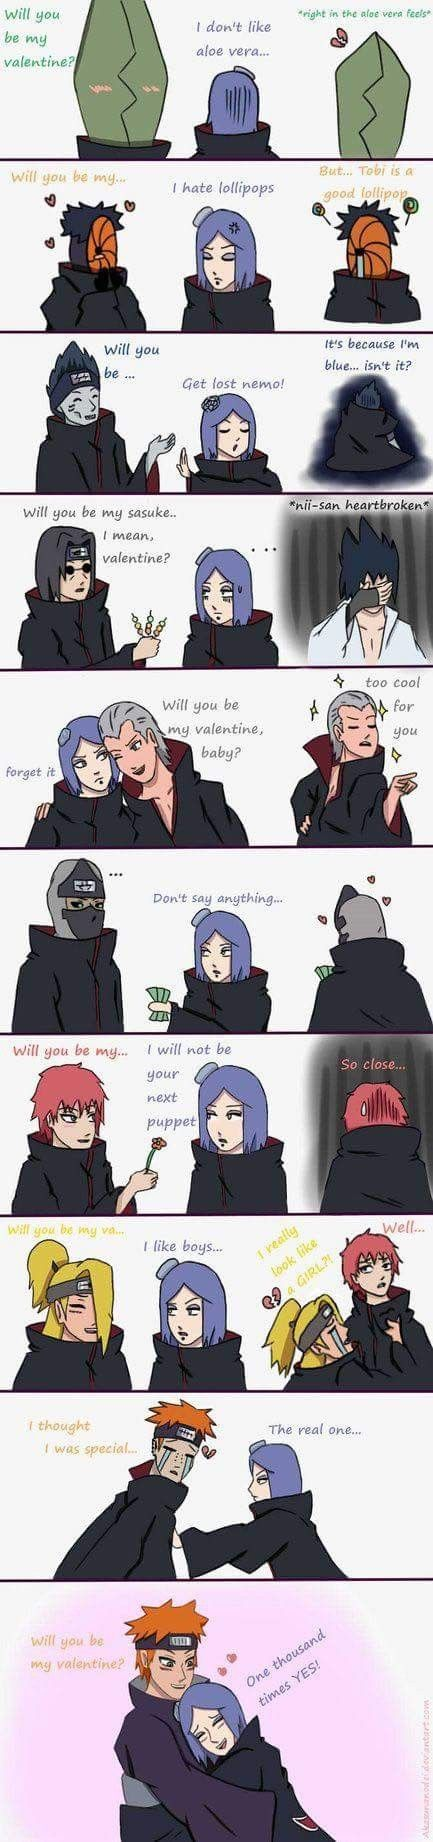 Haha  Konan on Valentine's Day... That's so funny ❤️❤️❤️ Akatsuki's struggle with only one girl...